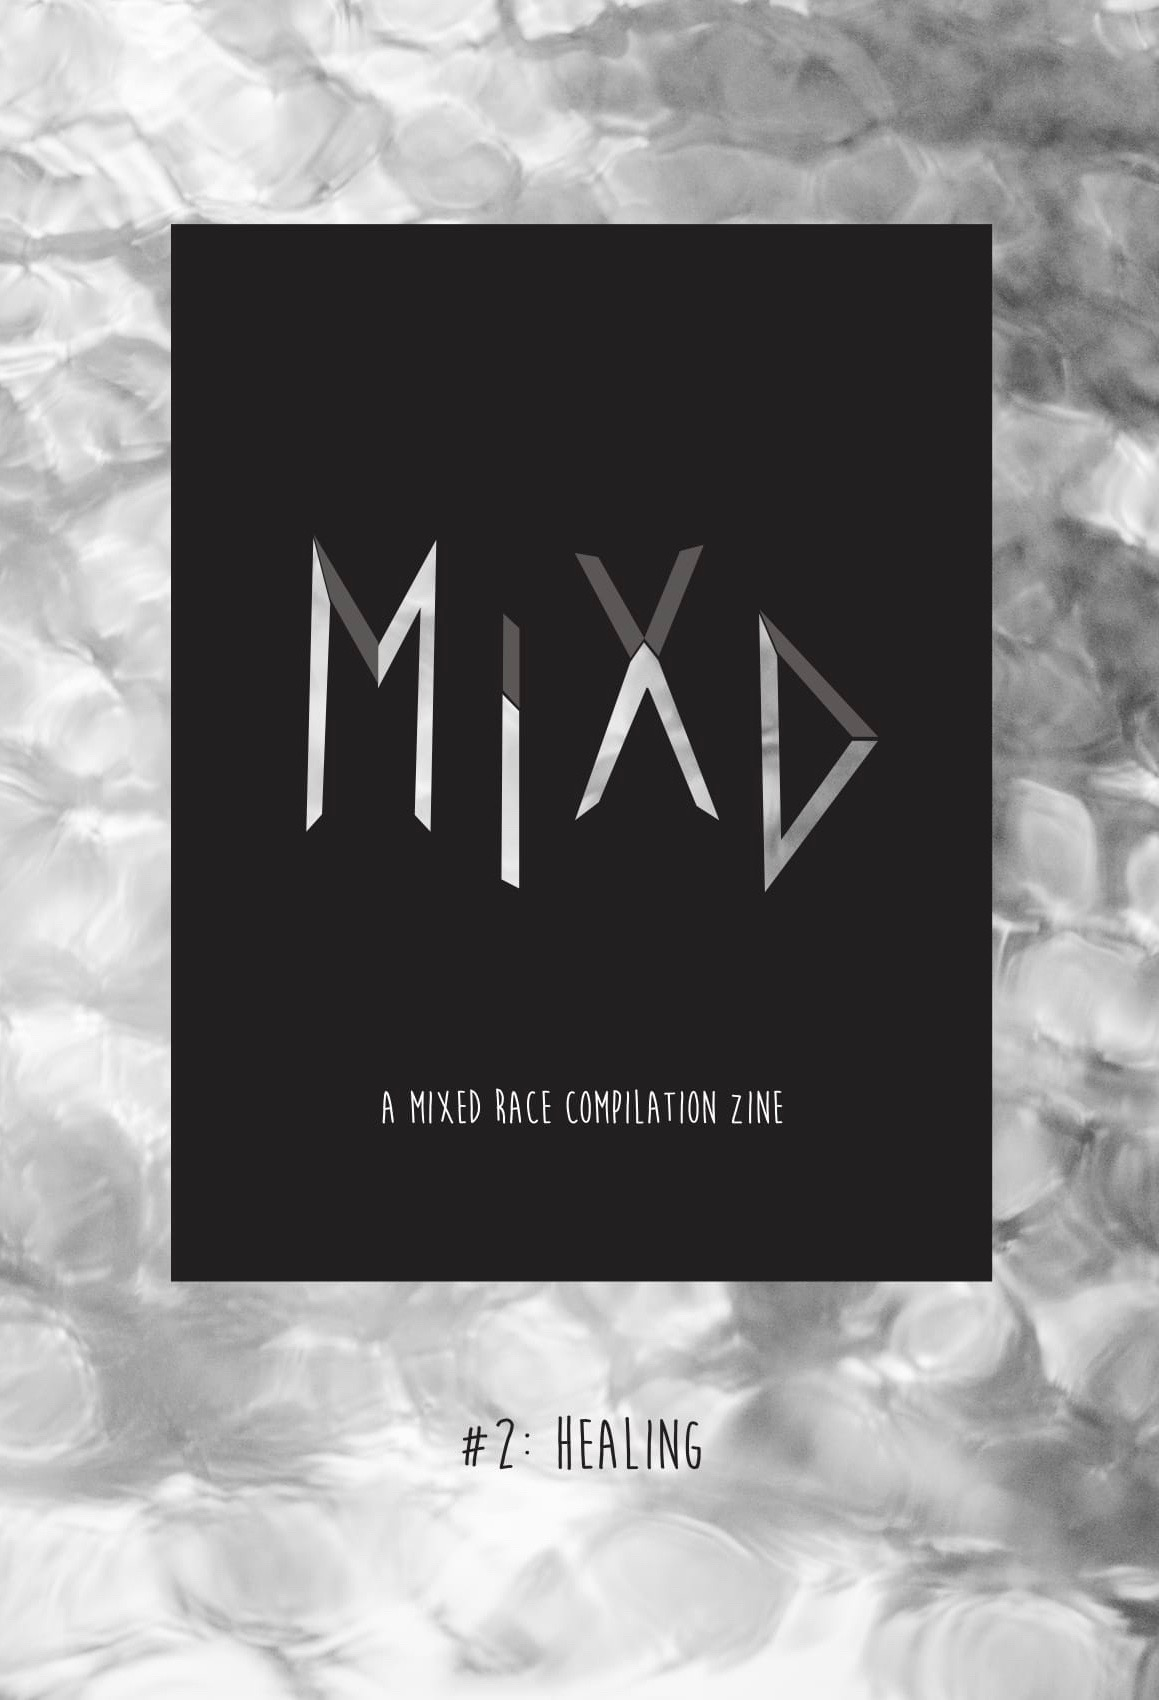 MIXD: A Mixed-Race Compilation Zine